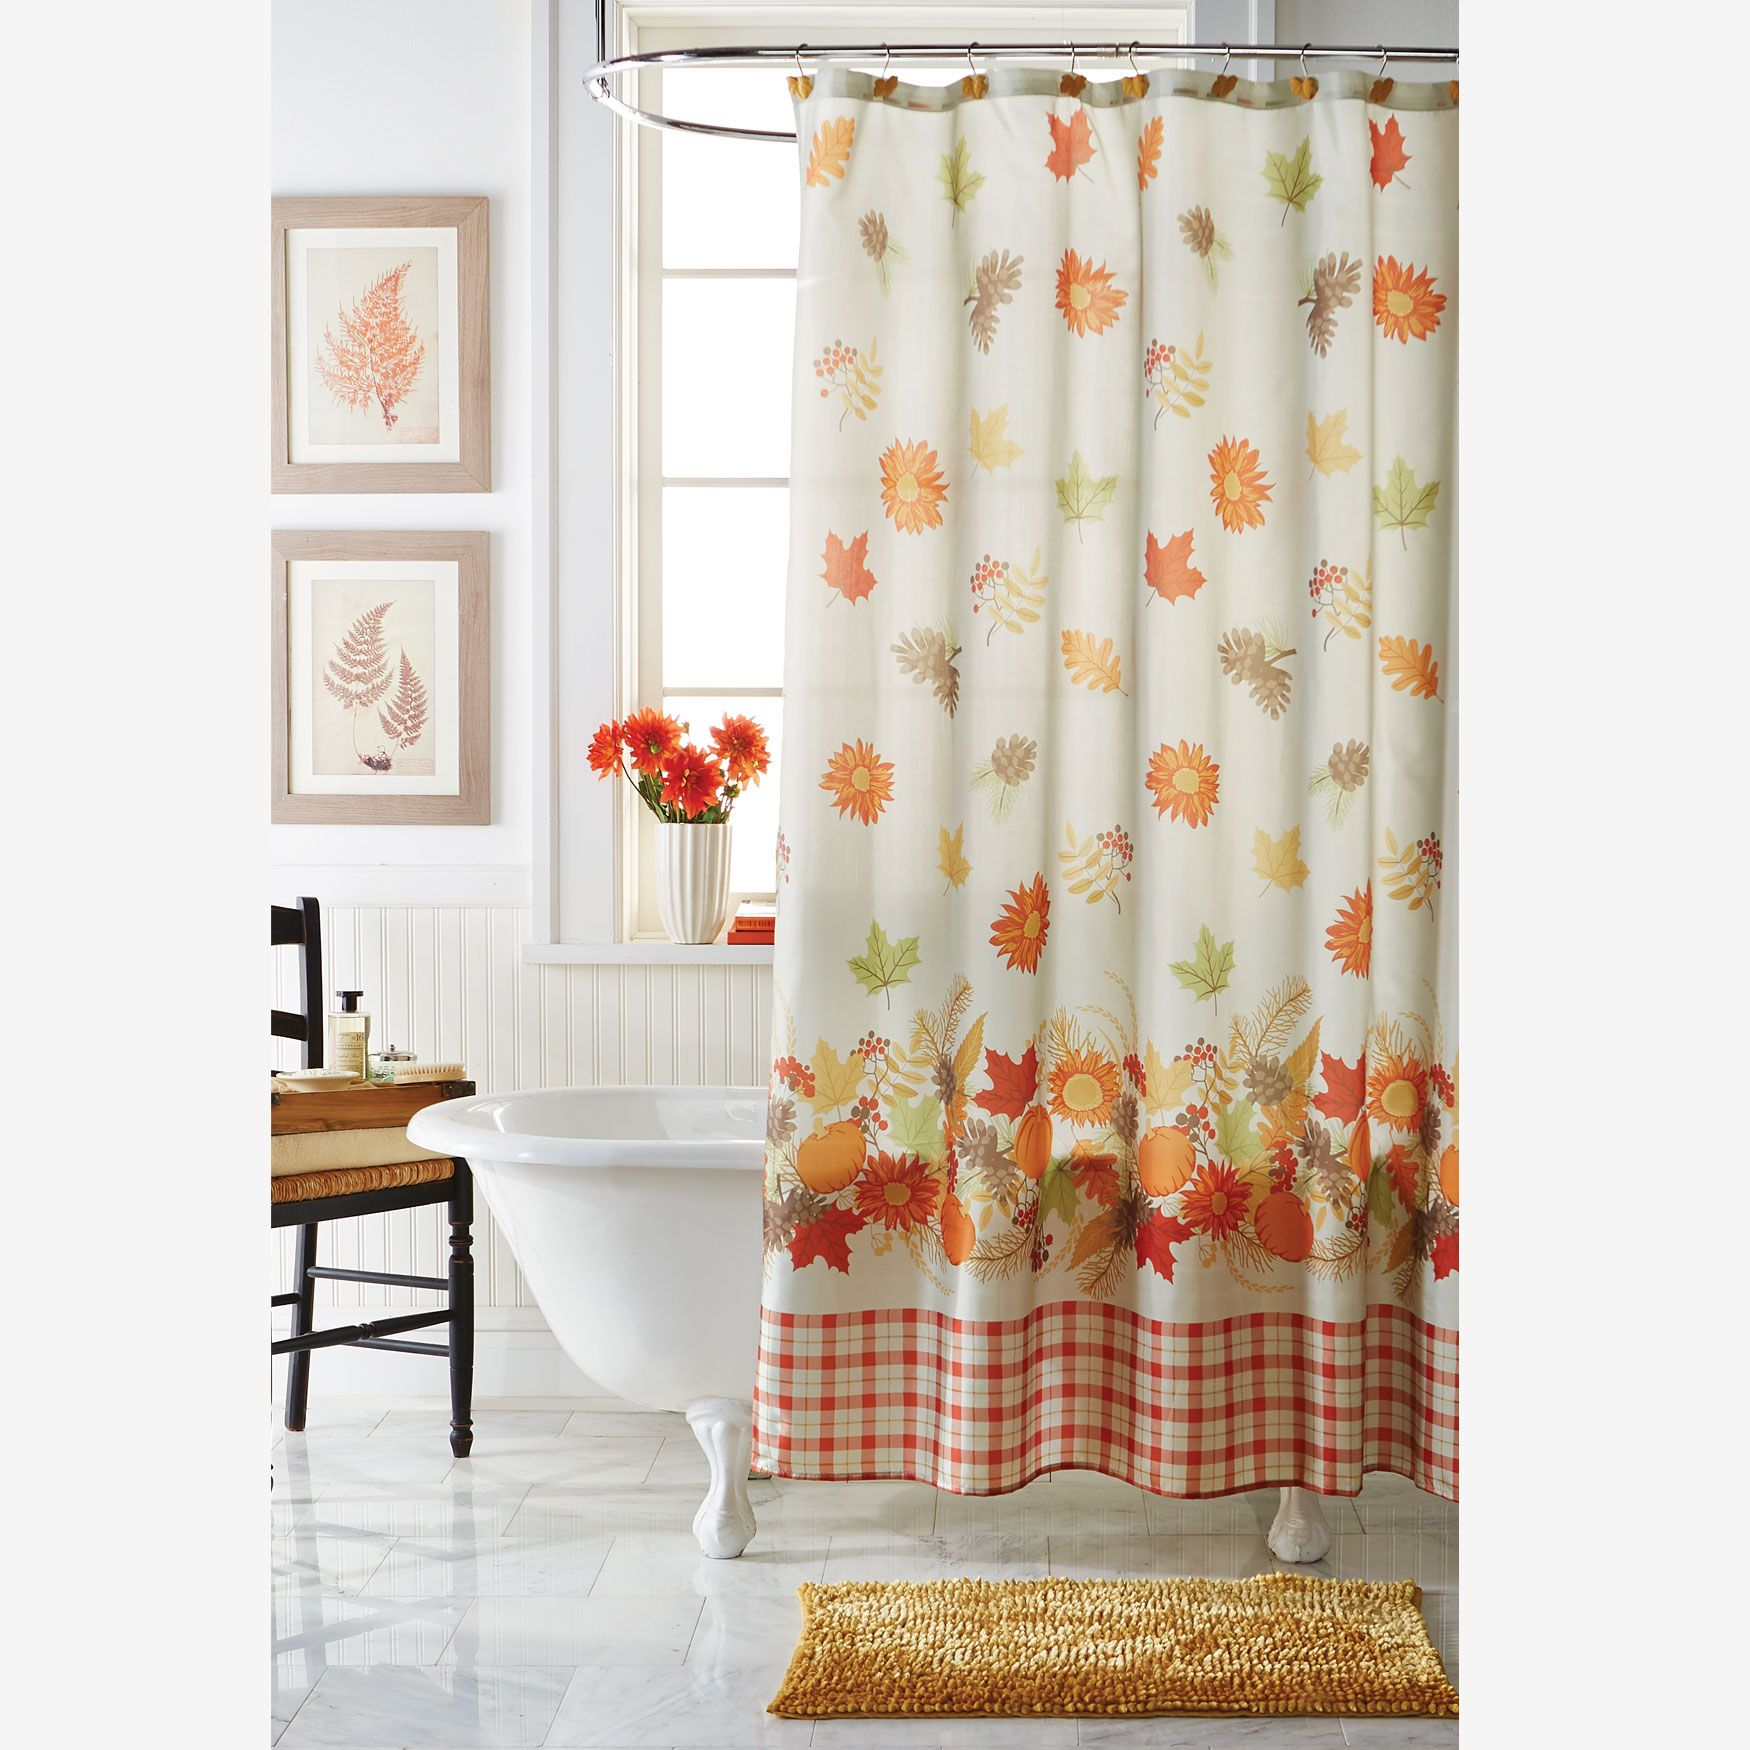 13 Pc Harvest Leaf Shower Curtain Set Bath Accessories Shower Curtain Sets Bath Accessories Buffet Server